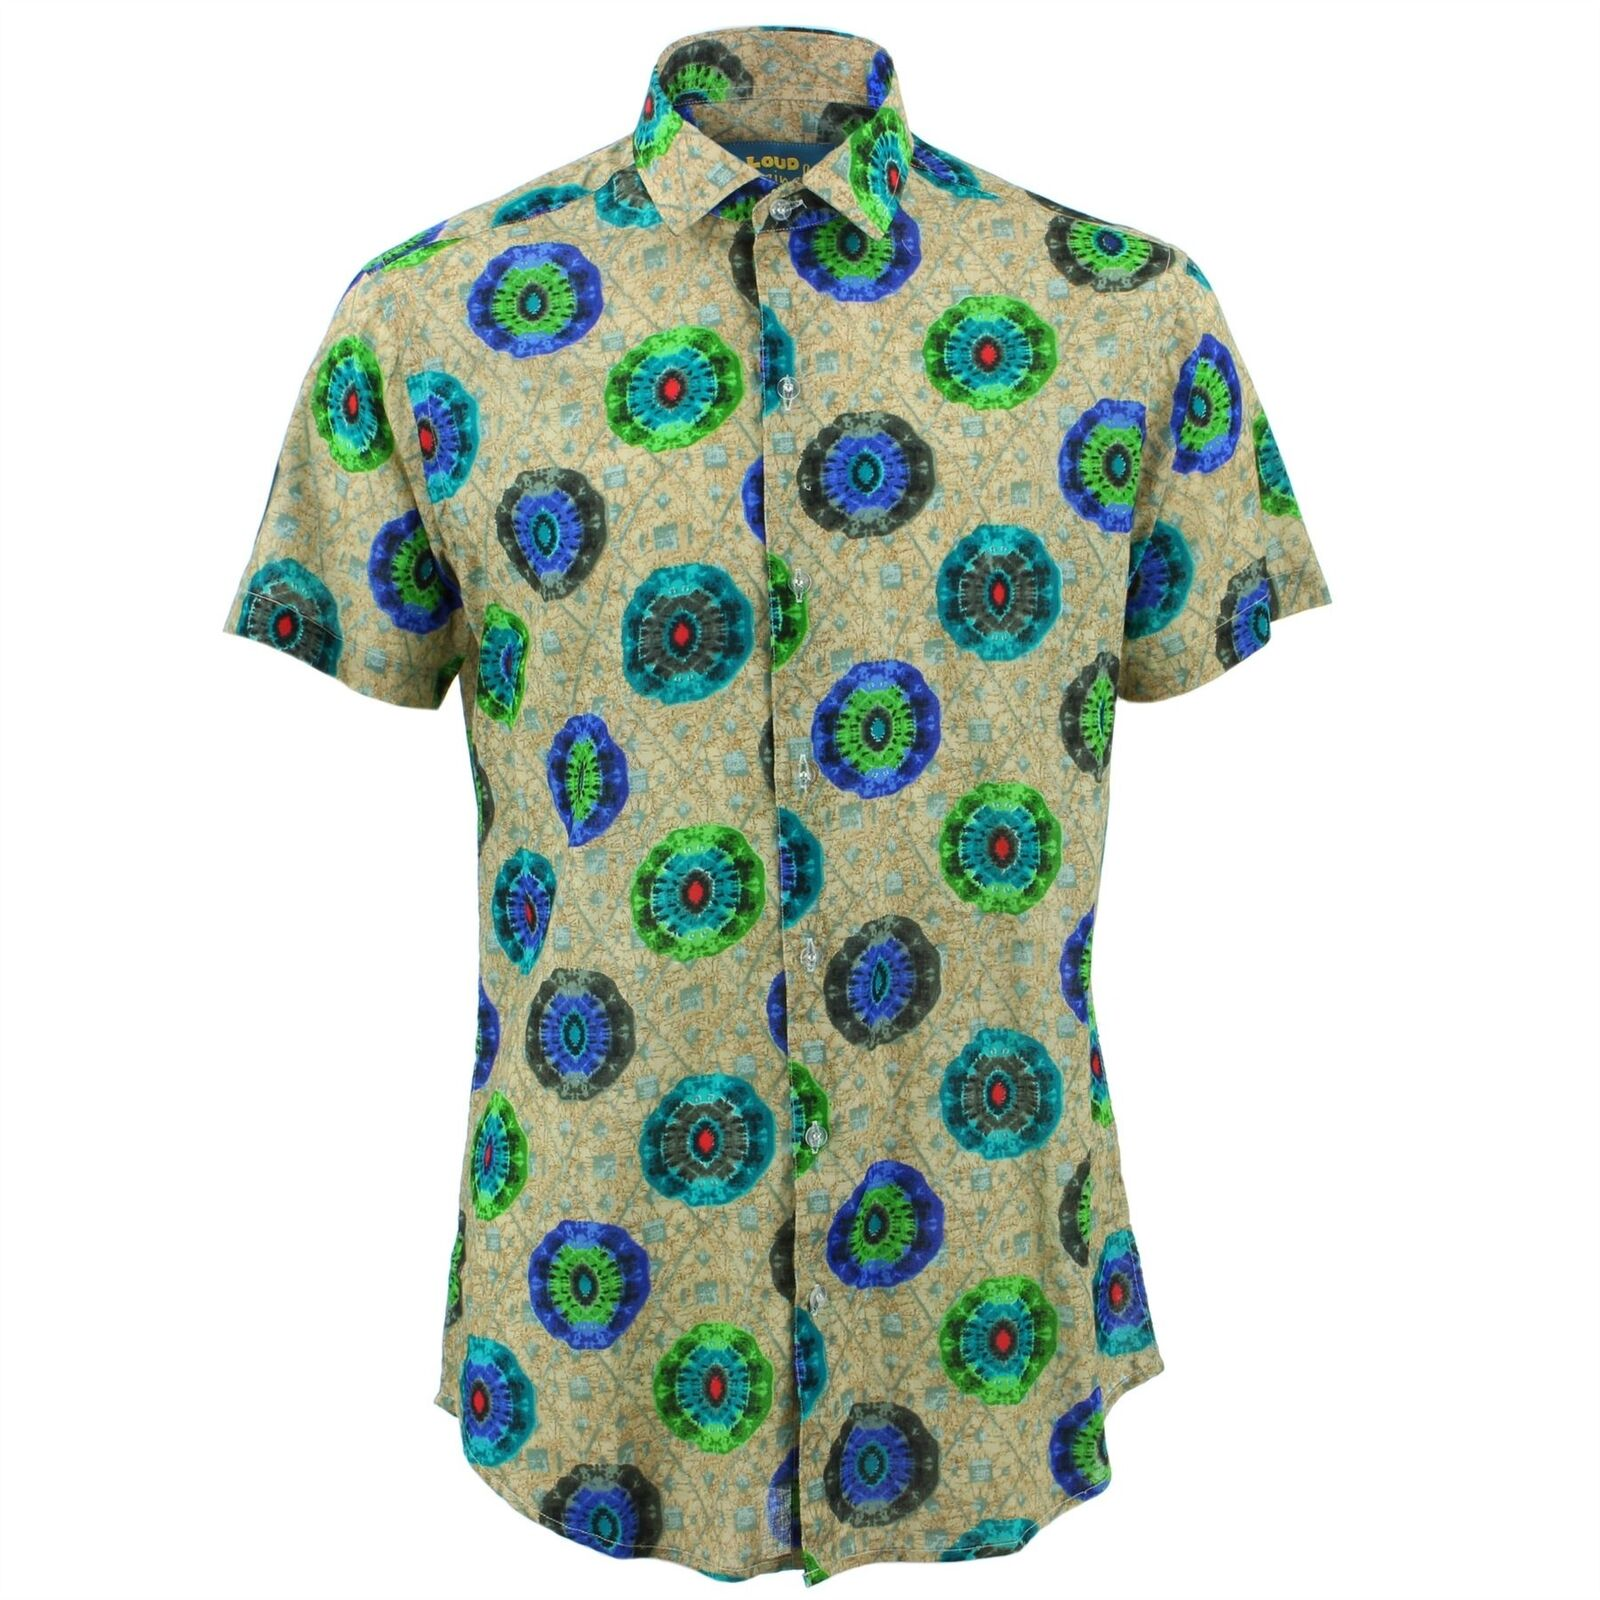 Mens Shirt Loud Originals TAILGoldt FIT Kaleidoscope Blau Retro Psychedelic Fancy  | New Product 2019